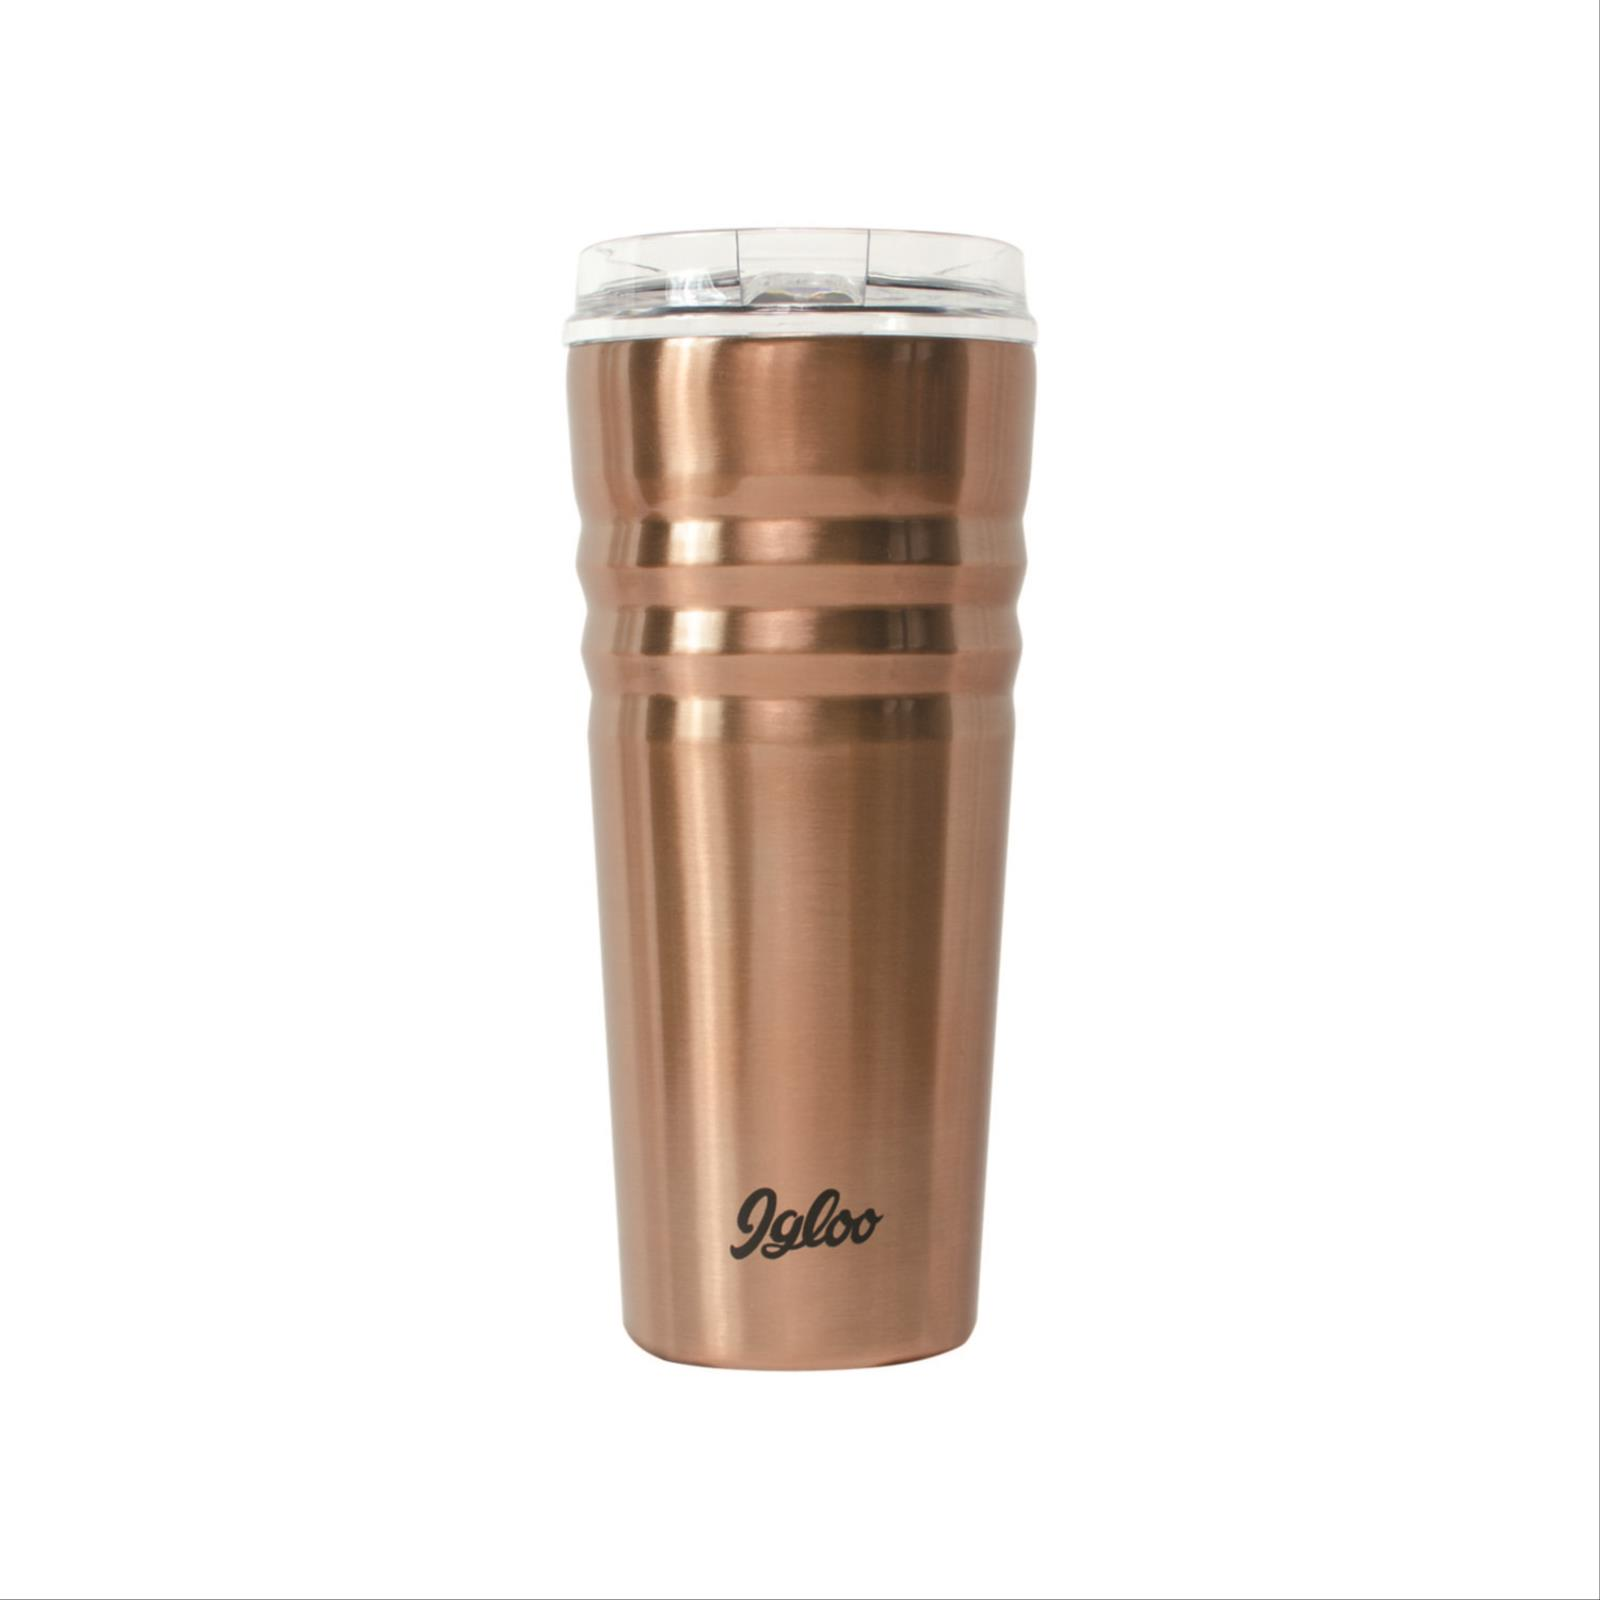 LEGACY™ Stainless Steel 20oz Insulated Tumbler